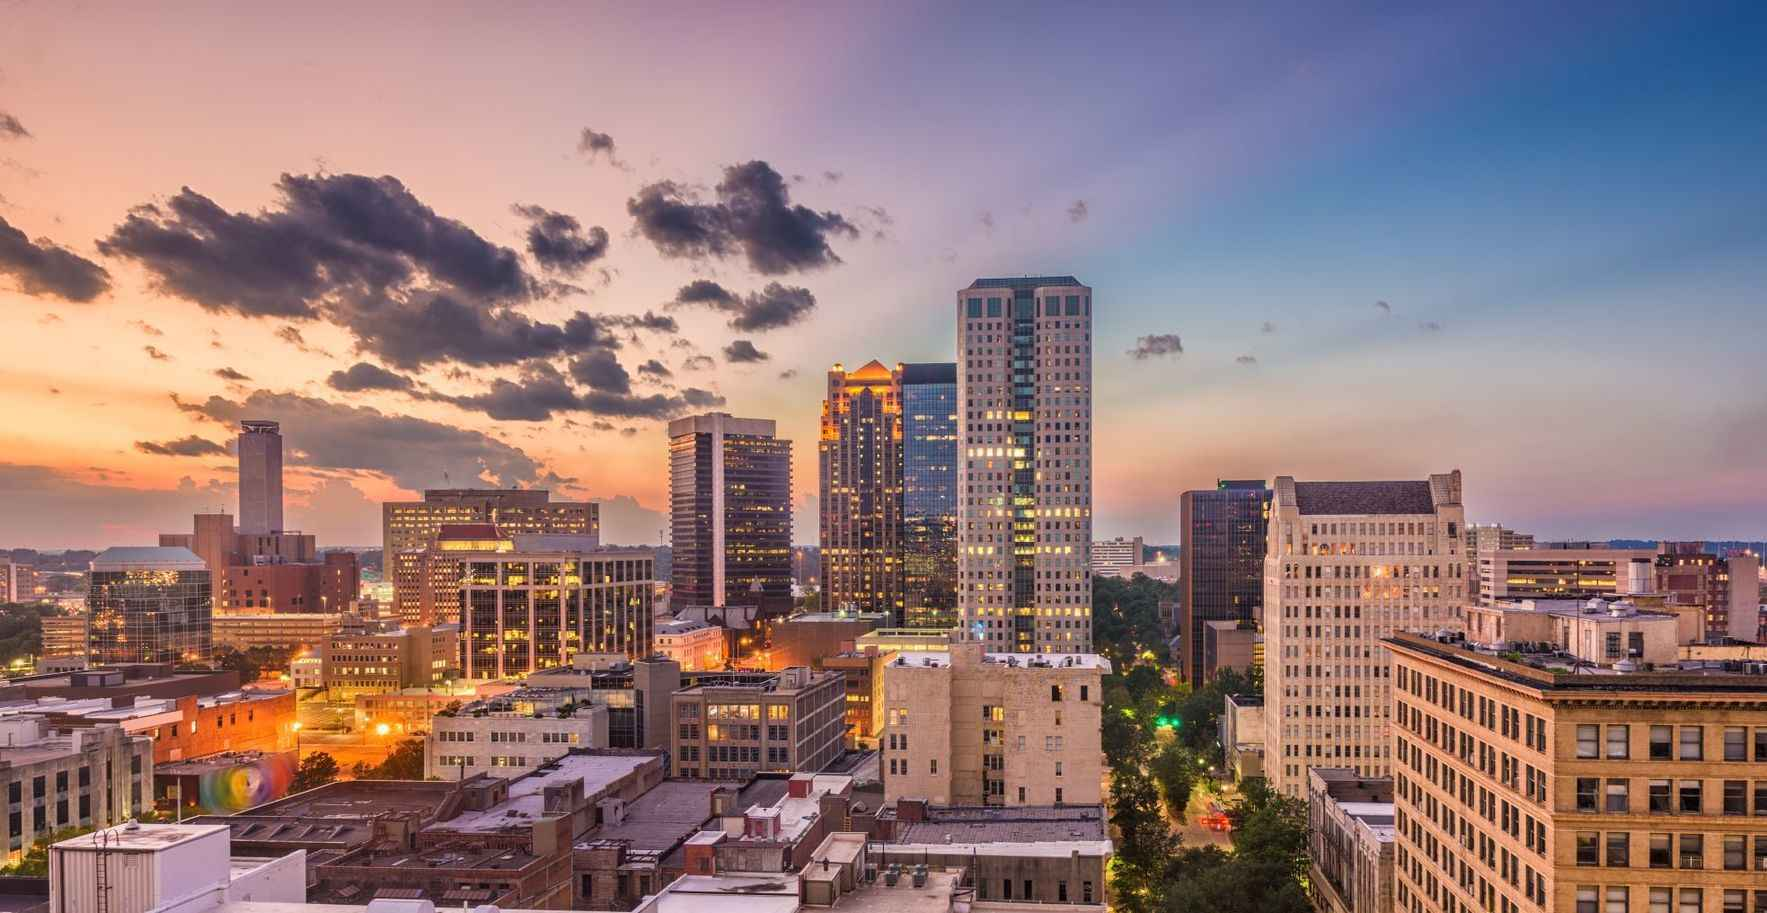 The Birmingham Business Relief Fund will support small businesses and storefronts affected by unrest that occurred in downtown Birmingham image